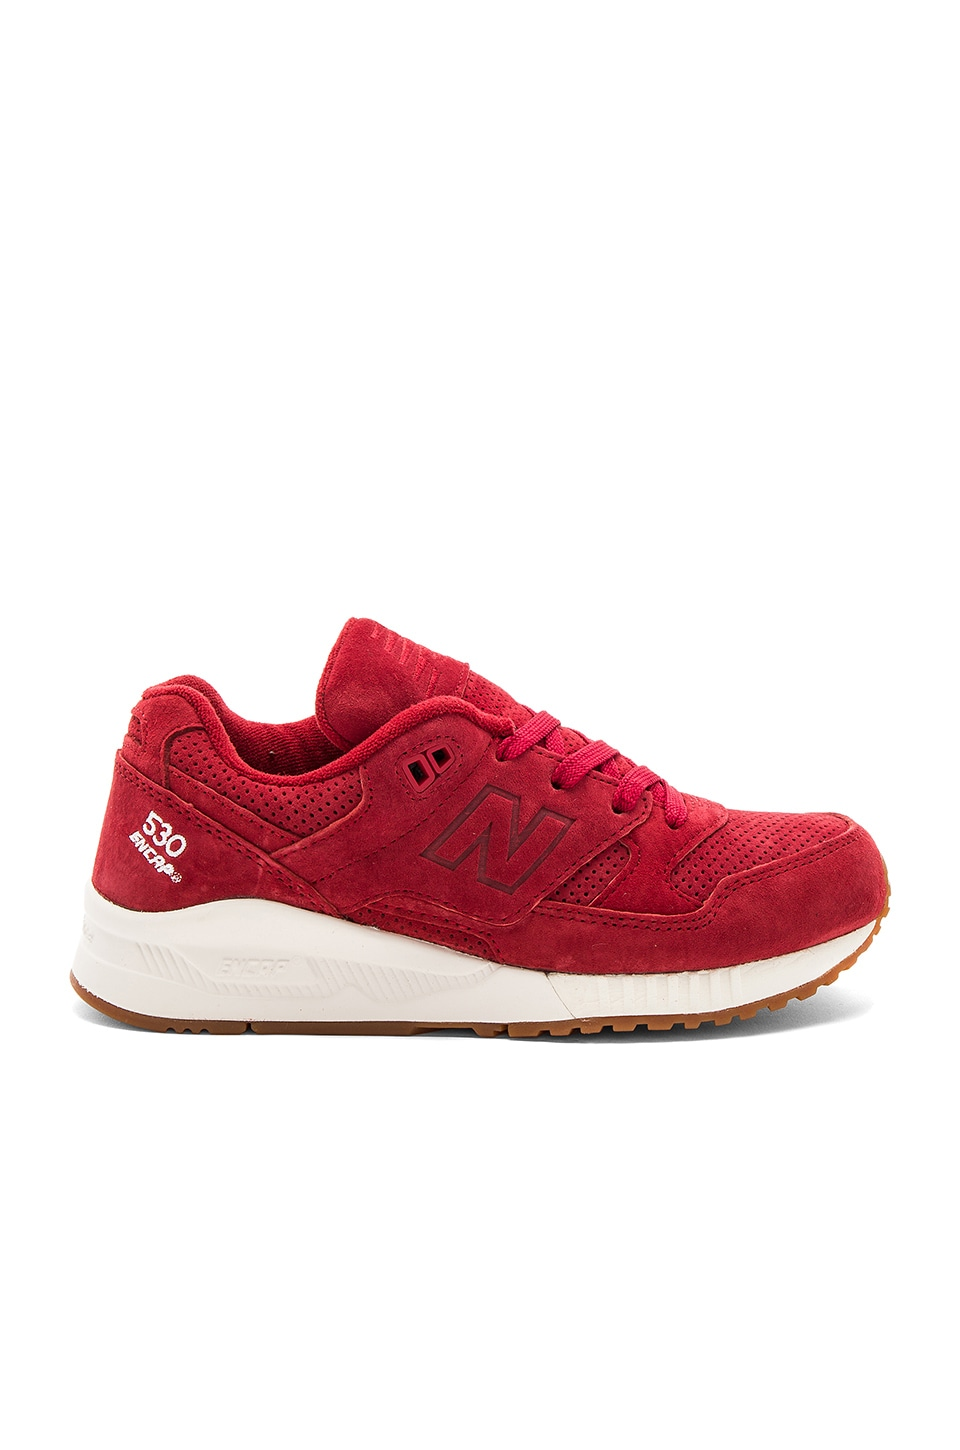 New Balance Lux Suede Sneaker in Envy